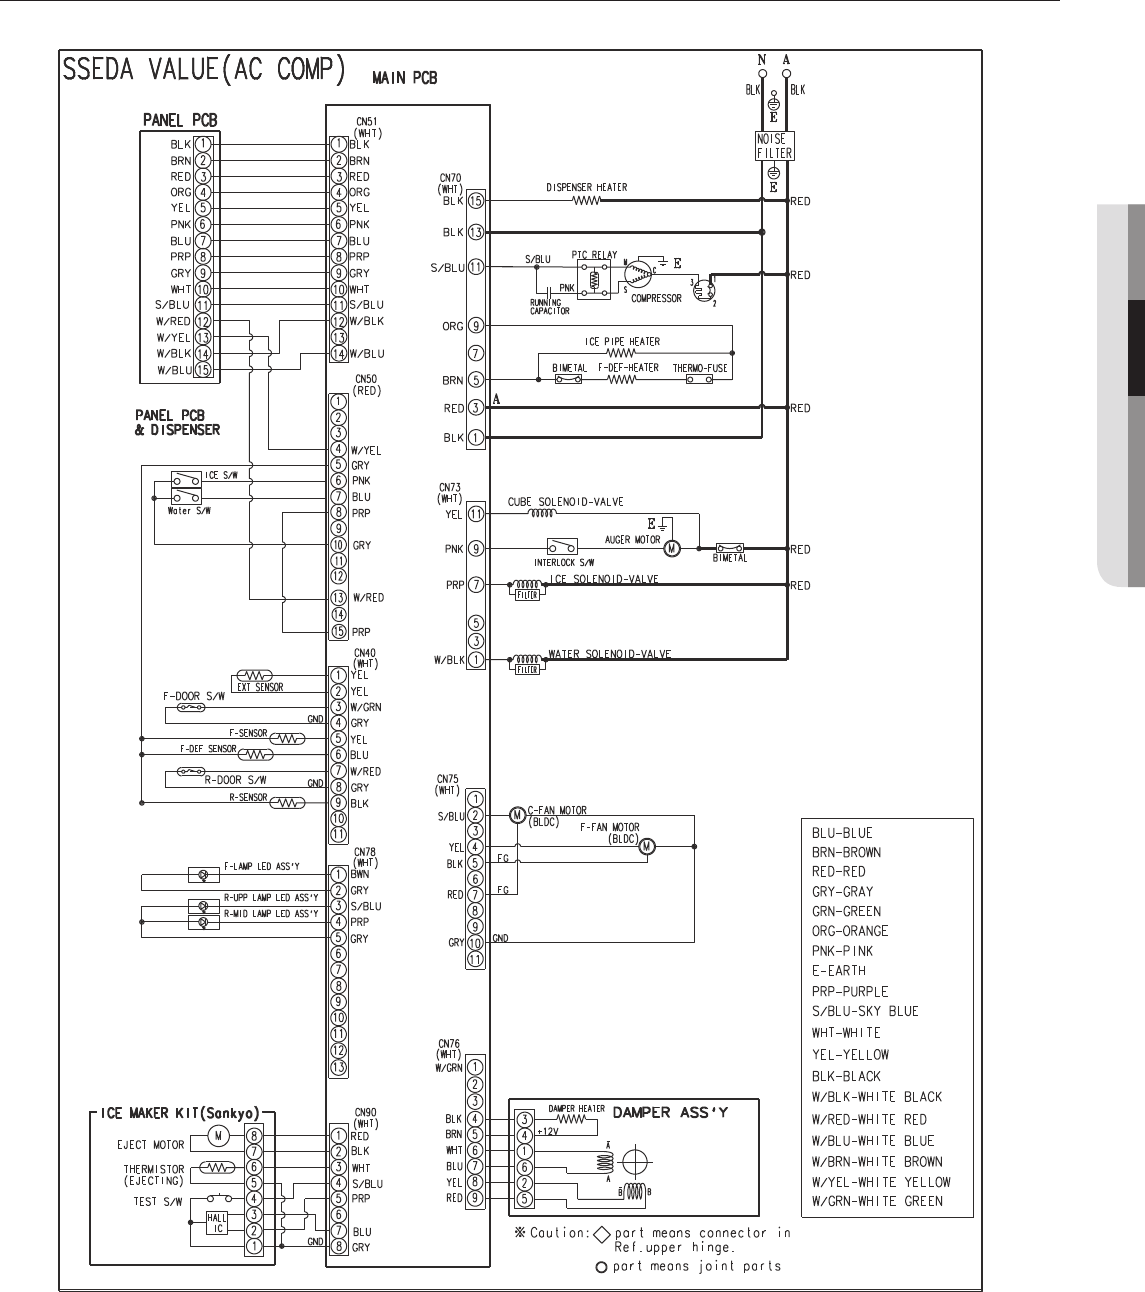 21aa6212 5c03 4539 ac02 99a0885d5c5e bg1f page 31 of samsung refrigerator rs261mdwp user guide wiring diagram for a refrigerator compressor at reclaimingppi.co